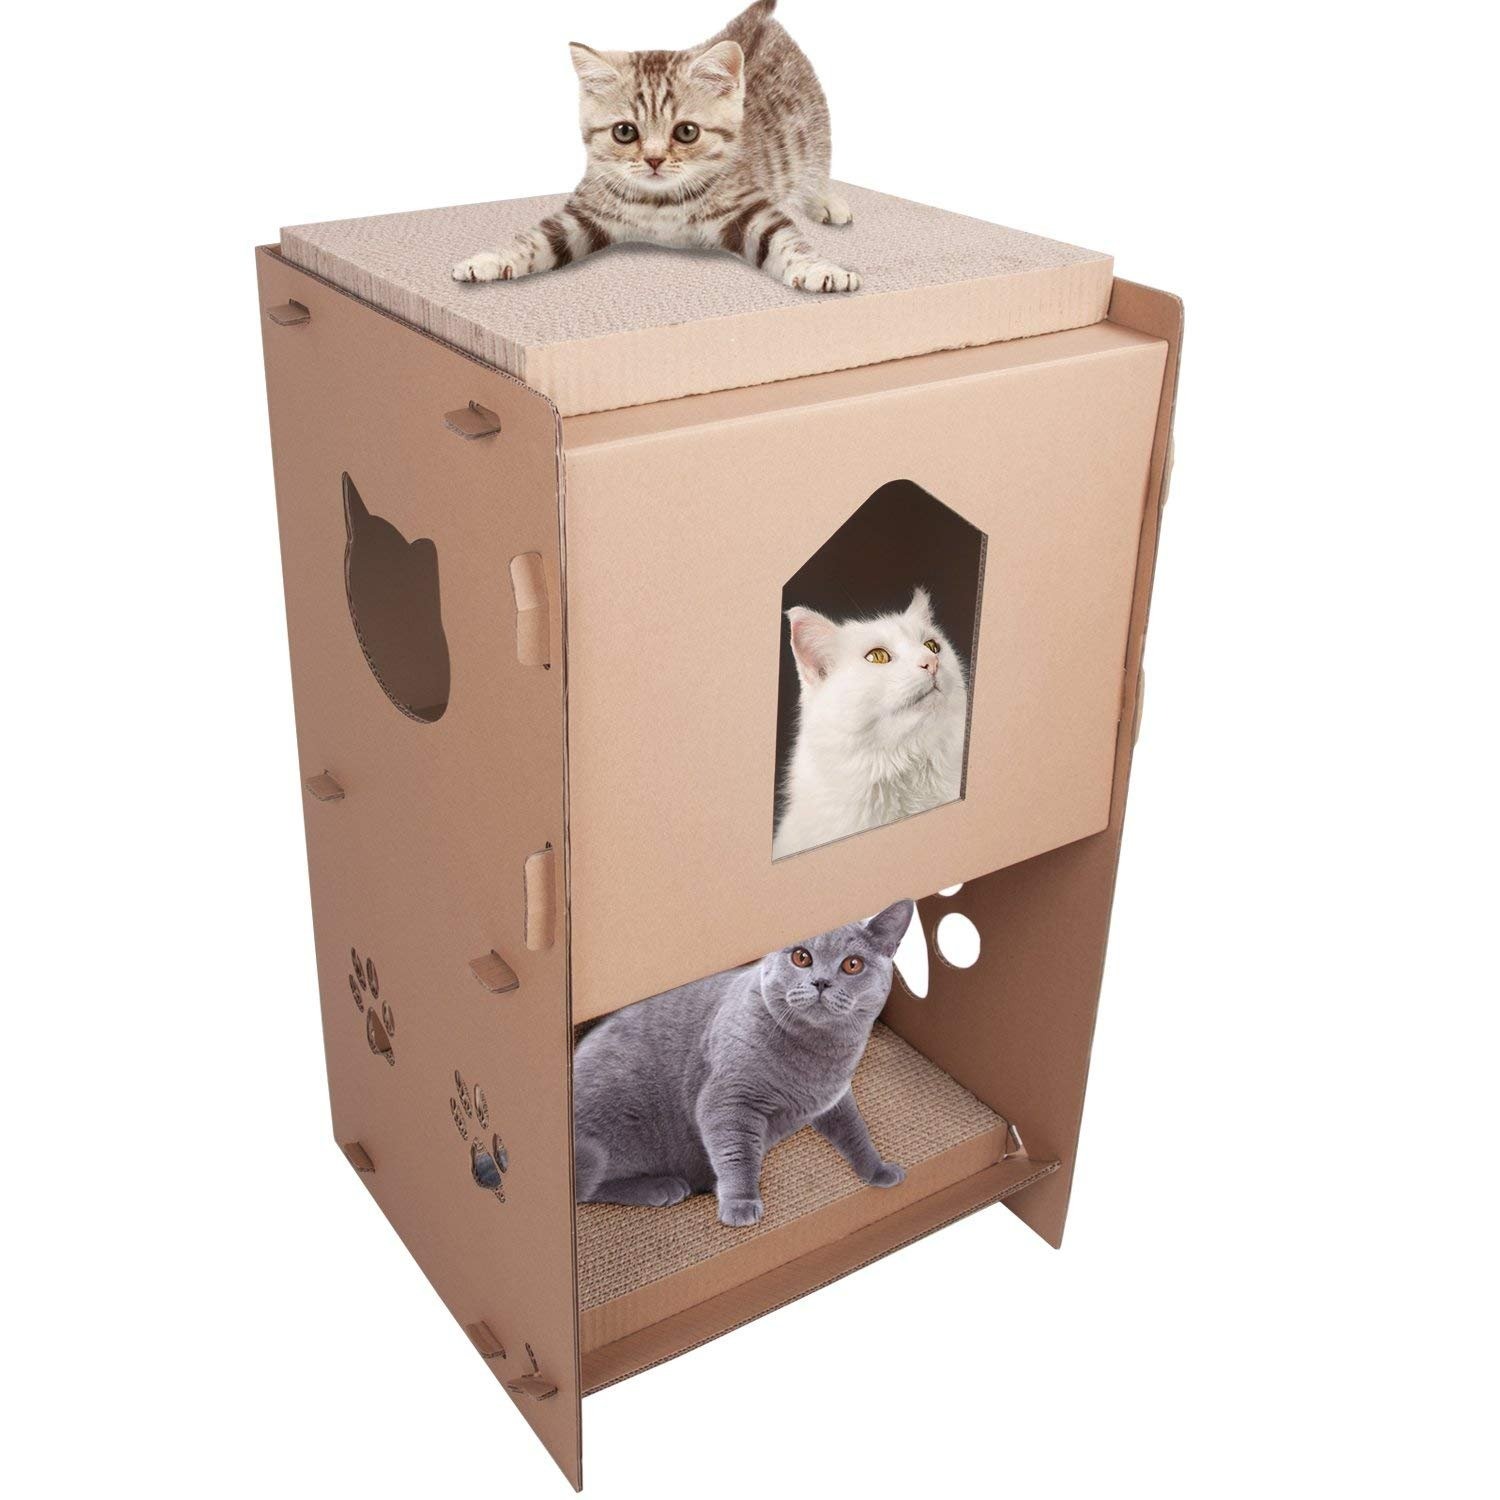 LEVE 3-storey Cat Scratcher House Durable Cardboard Cat Lounge with 2 Scratching Boards